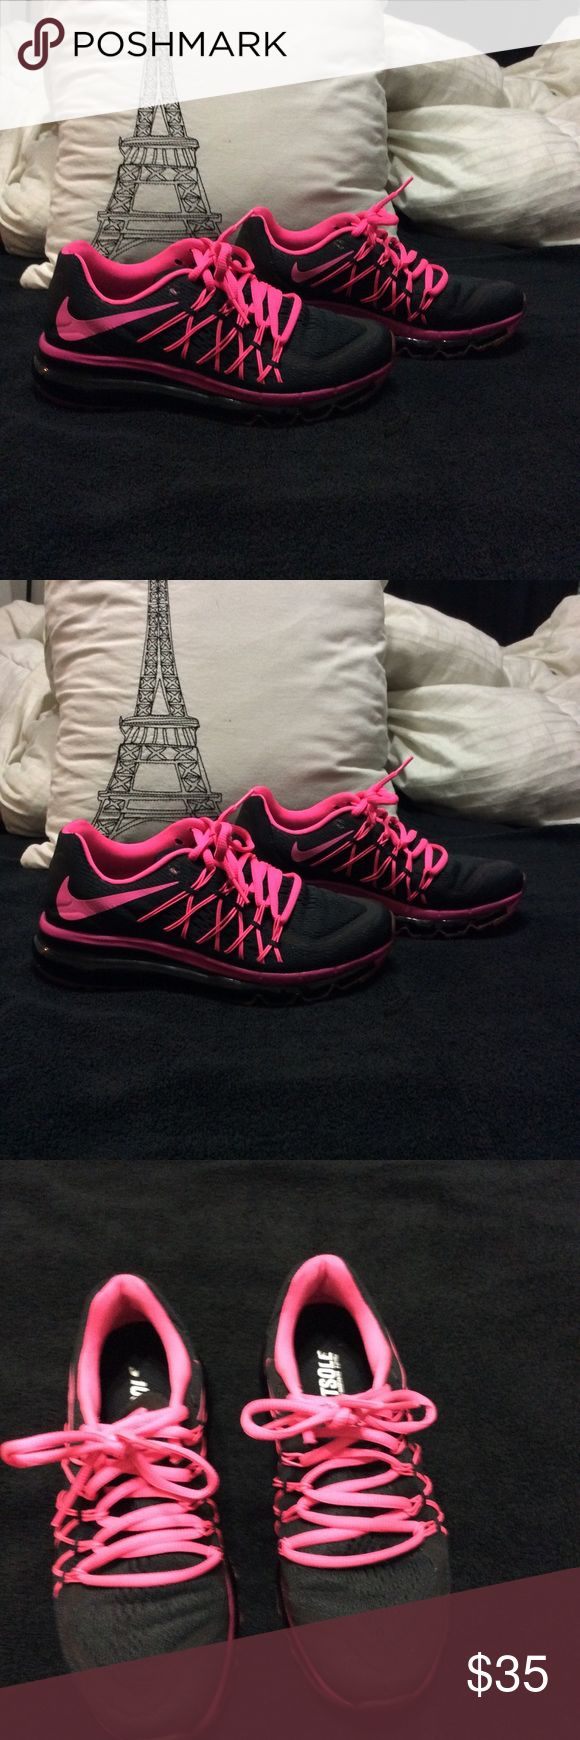 """Nike AirMax custom pink/black rare 6.5 wide Hardly worn pink and black nike air max's. Ordered custom from Nike ID website. One of a kind, made myself online. They are a """"wide"""" shoe. Size 6.5 wide. No box. Nike Shoes Athletic Shoes"""